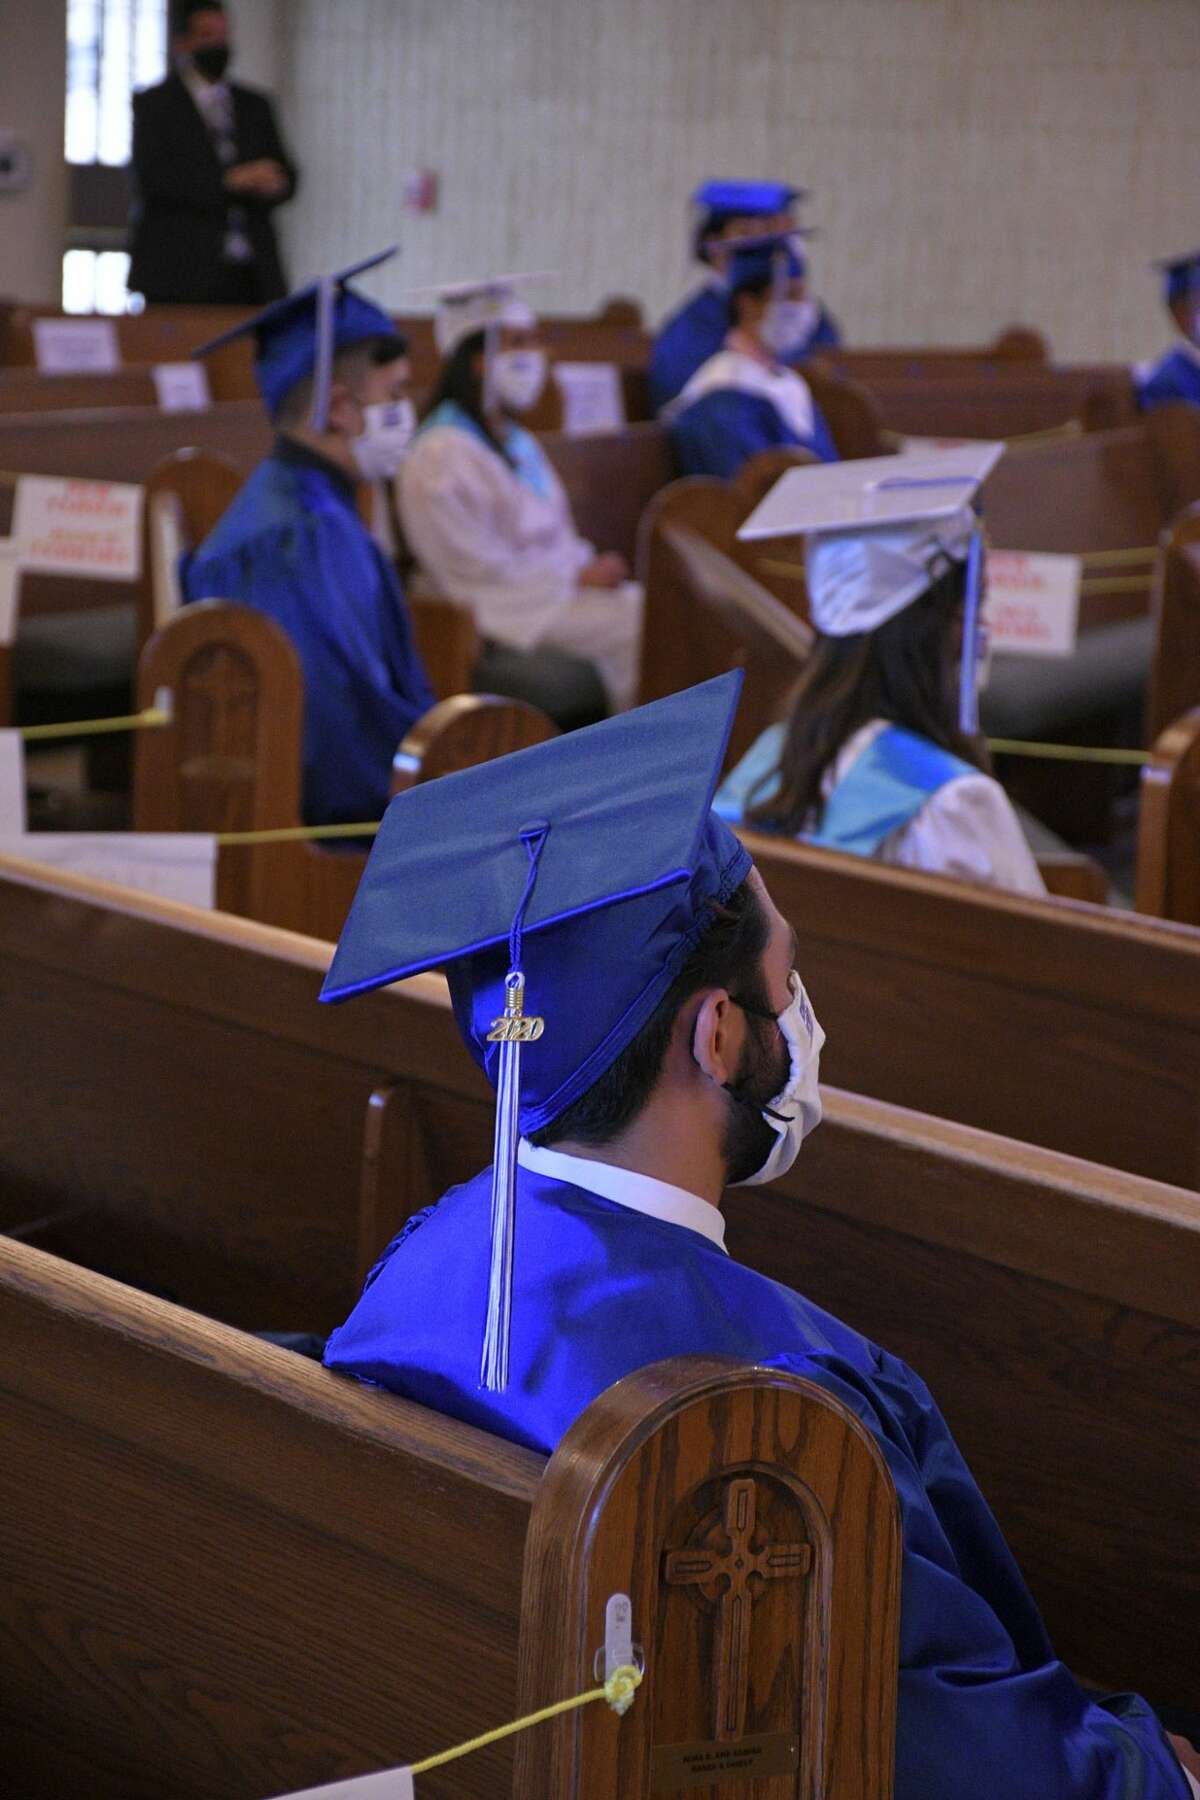 The graduating Class of 2020 from Saint Augustine High School held their graduating ceremony at St. Patrick's Catholic Church, Saturday, August 1, 2020. Bishop James A. Tamayo officiated a Mass in their honor.